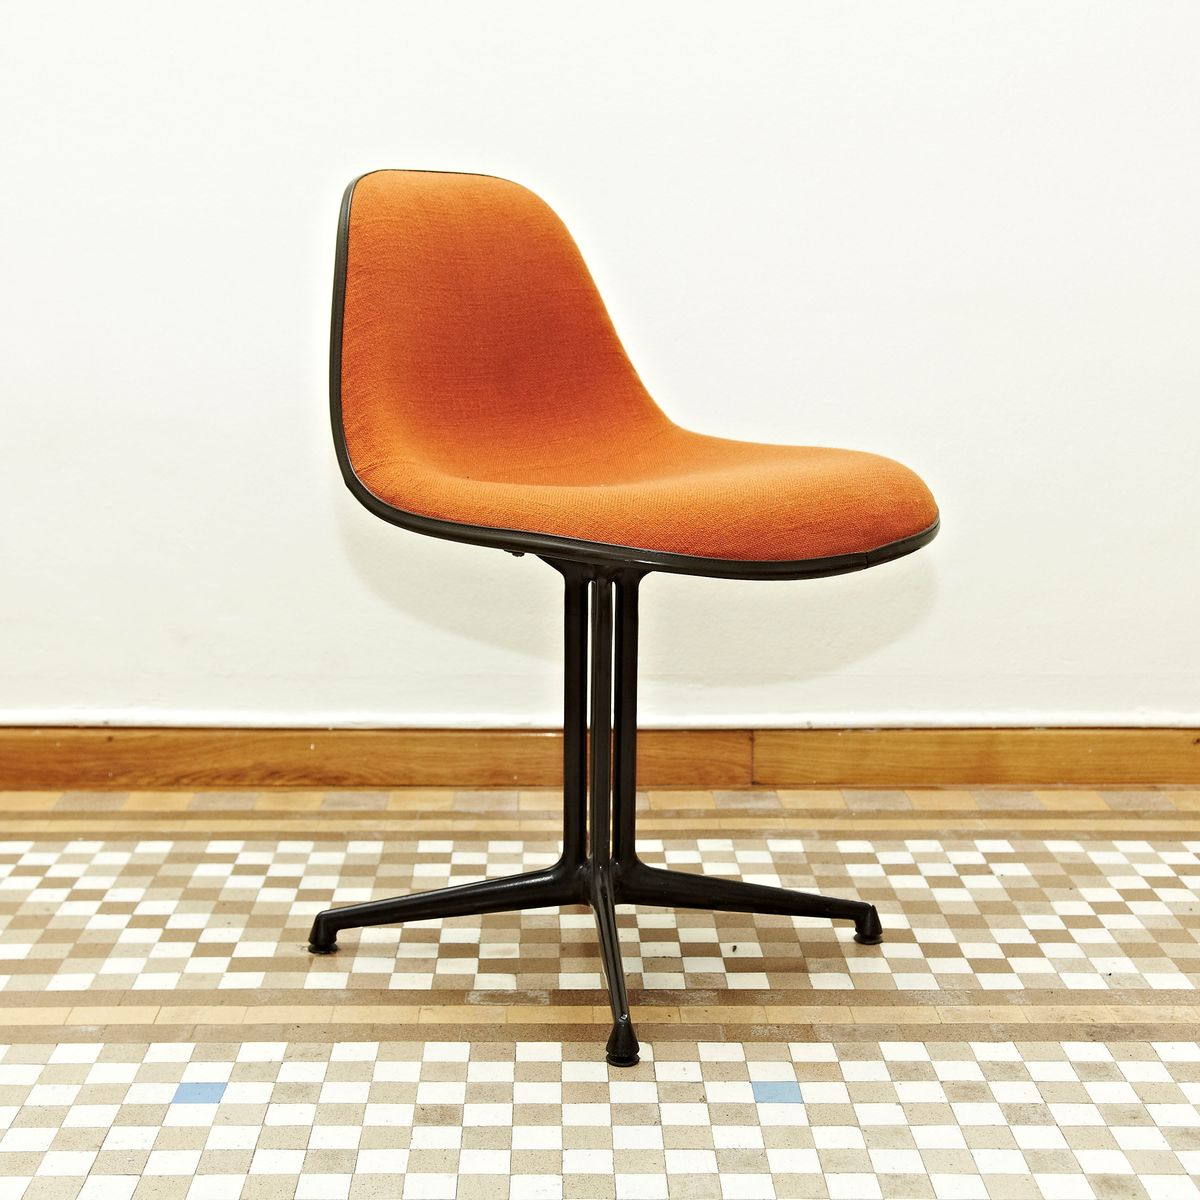 la fonda chair by charles  ray eames for herman miller s for  - la fonda chair by charles  ray eames for herman miller s